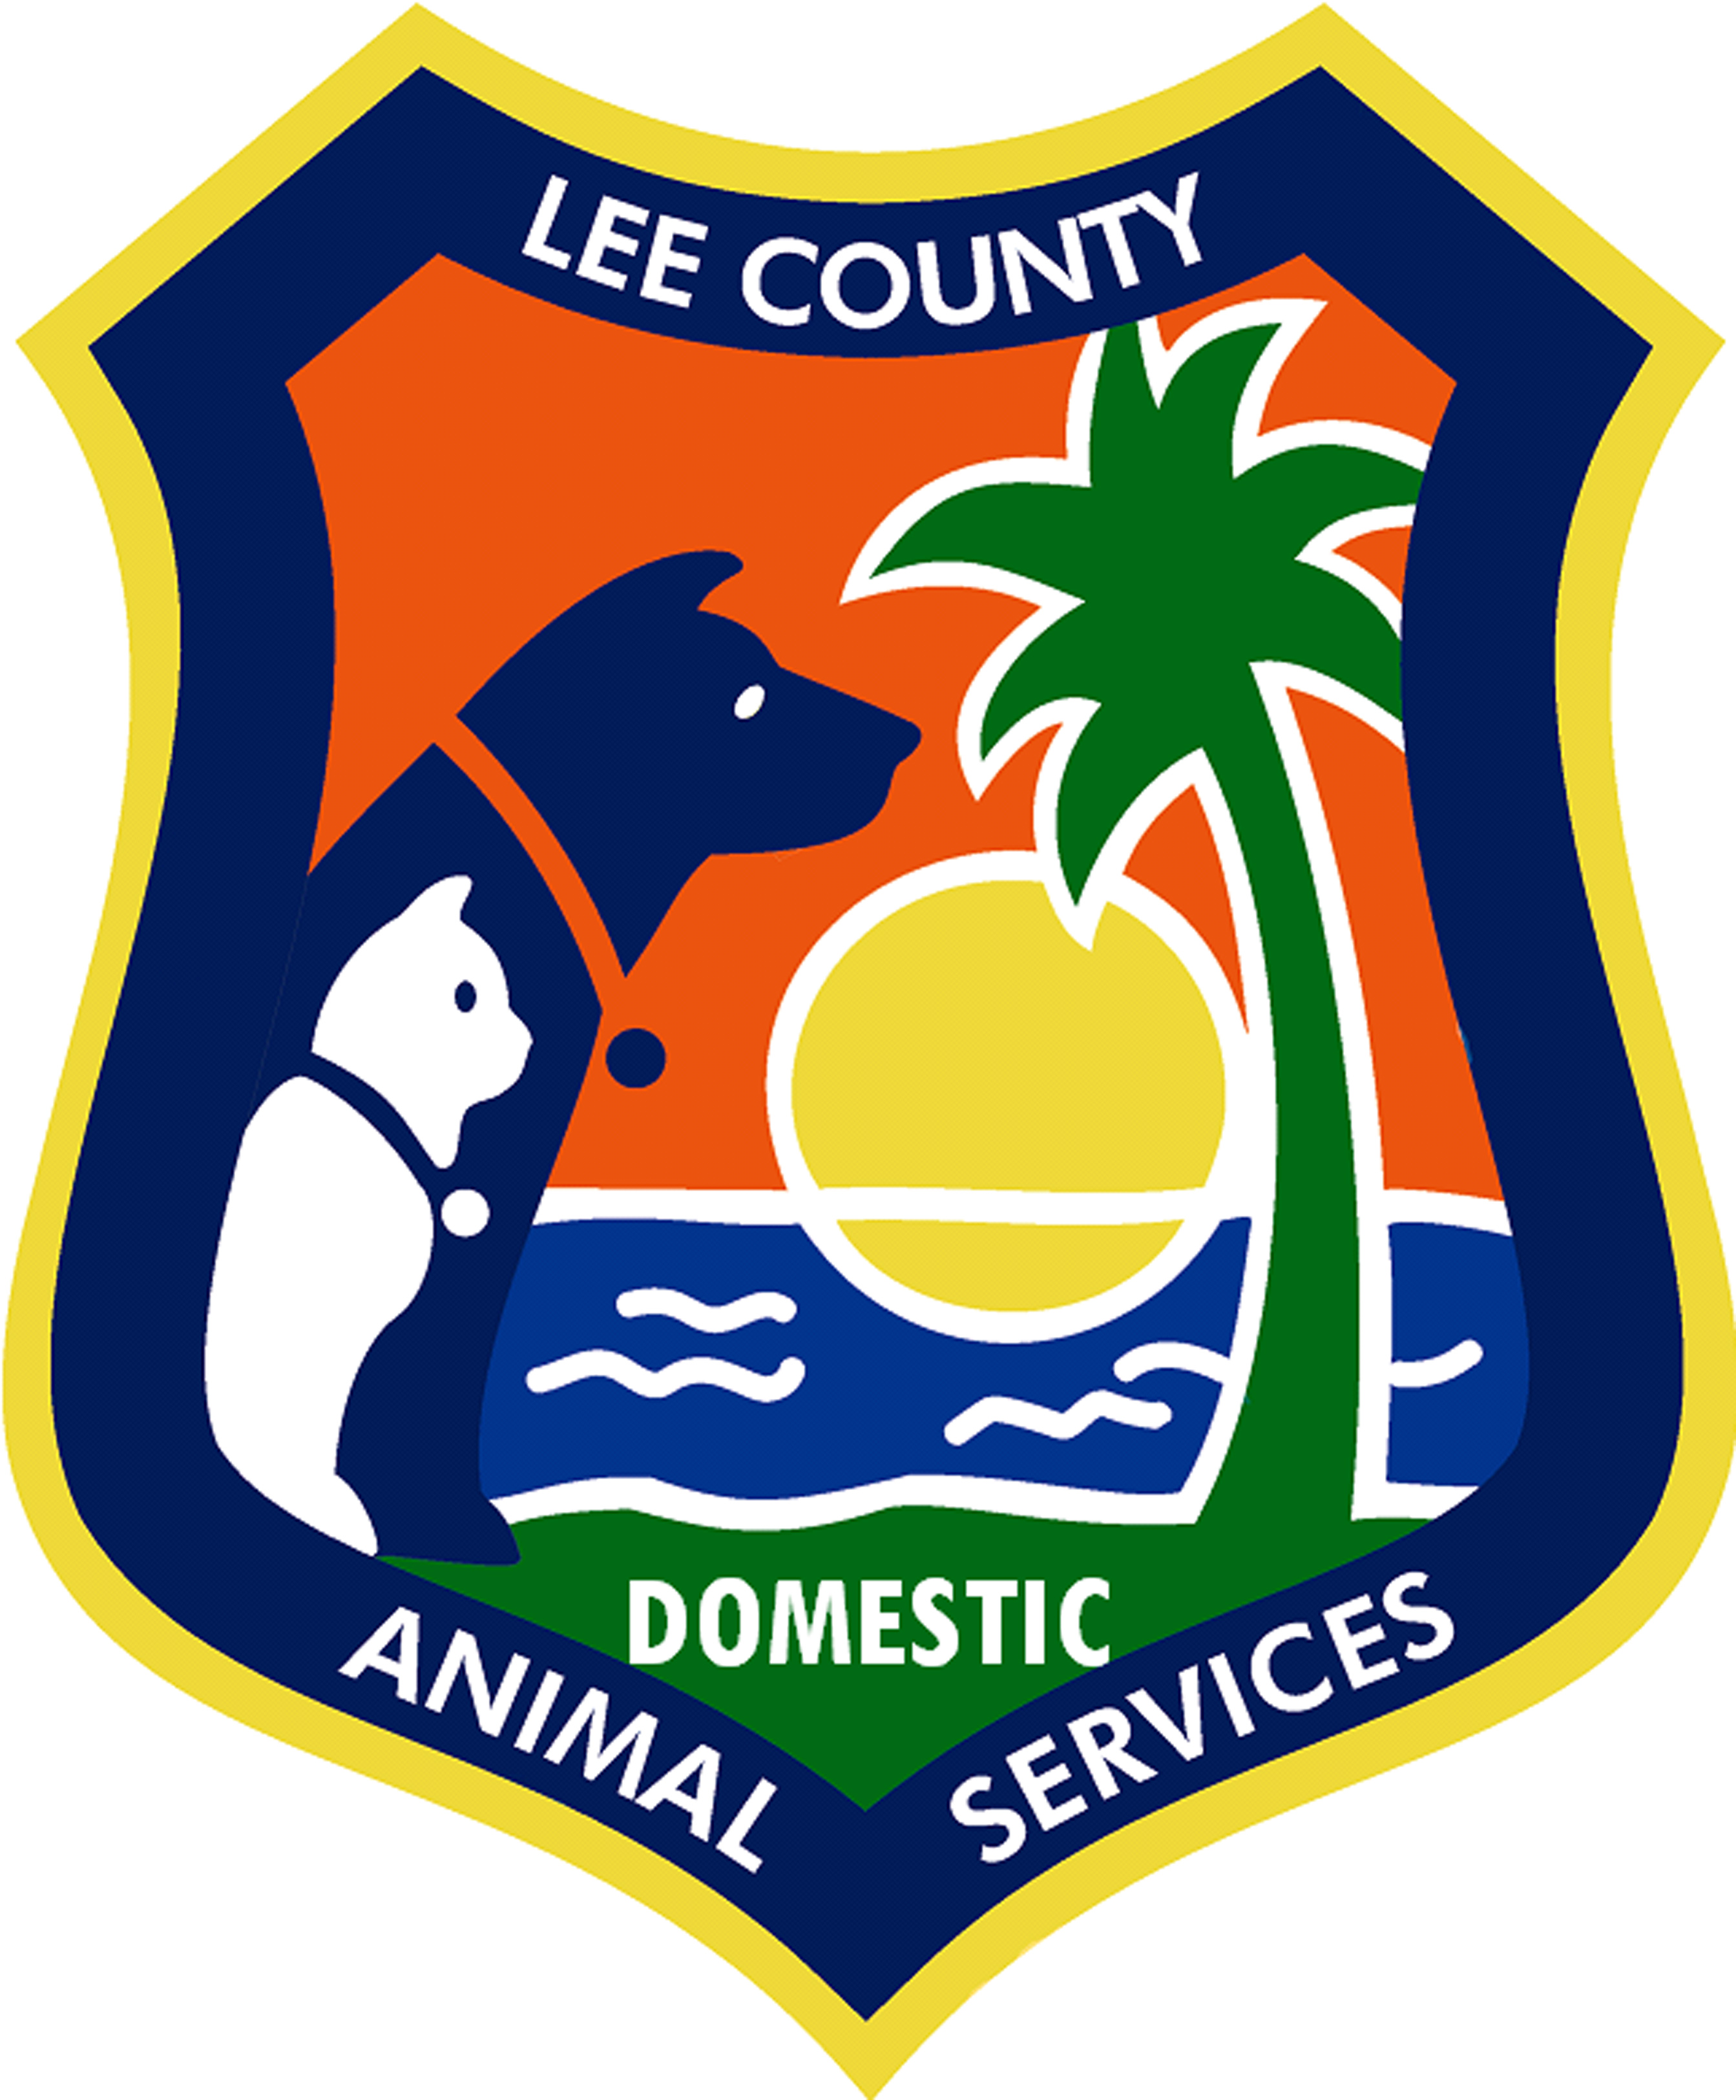 Lee County Domestic Animal Services